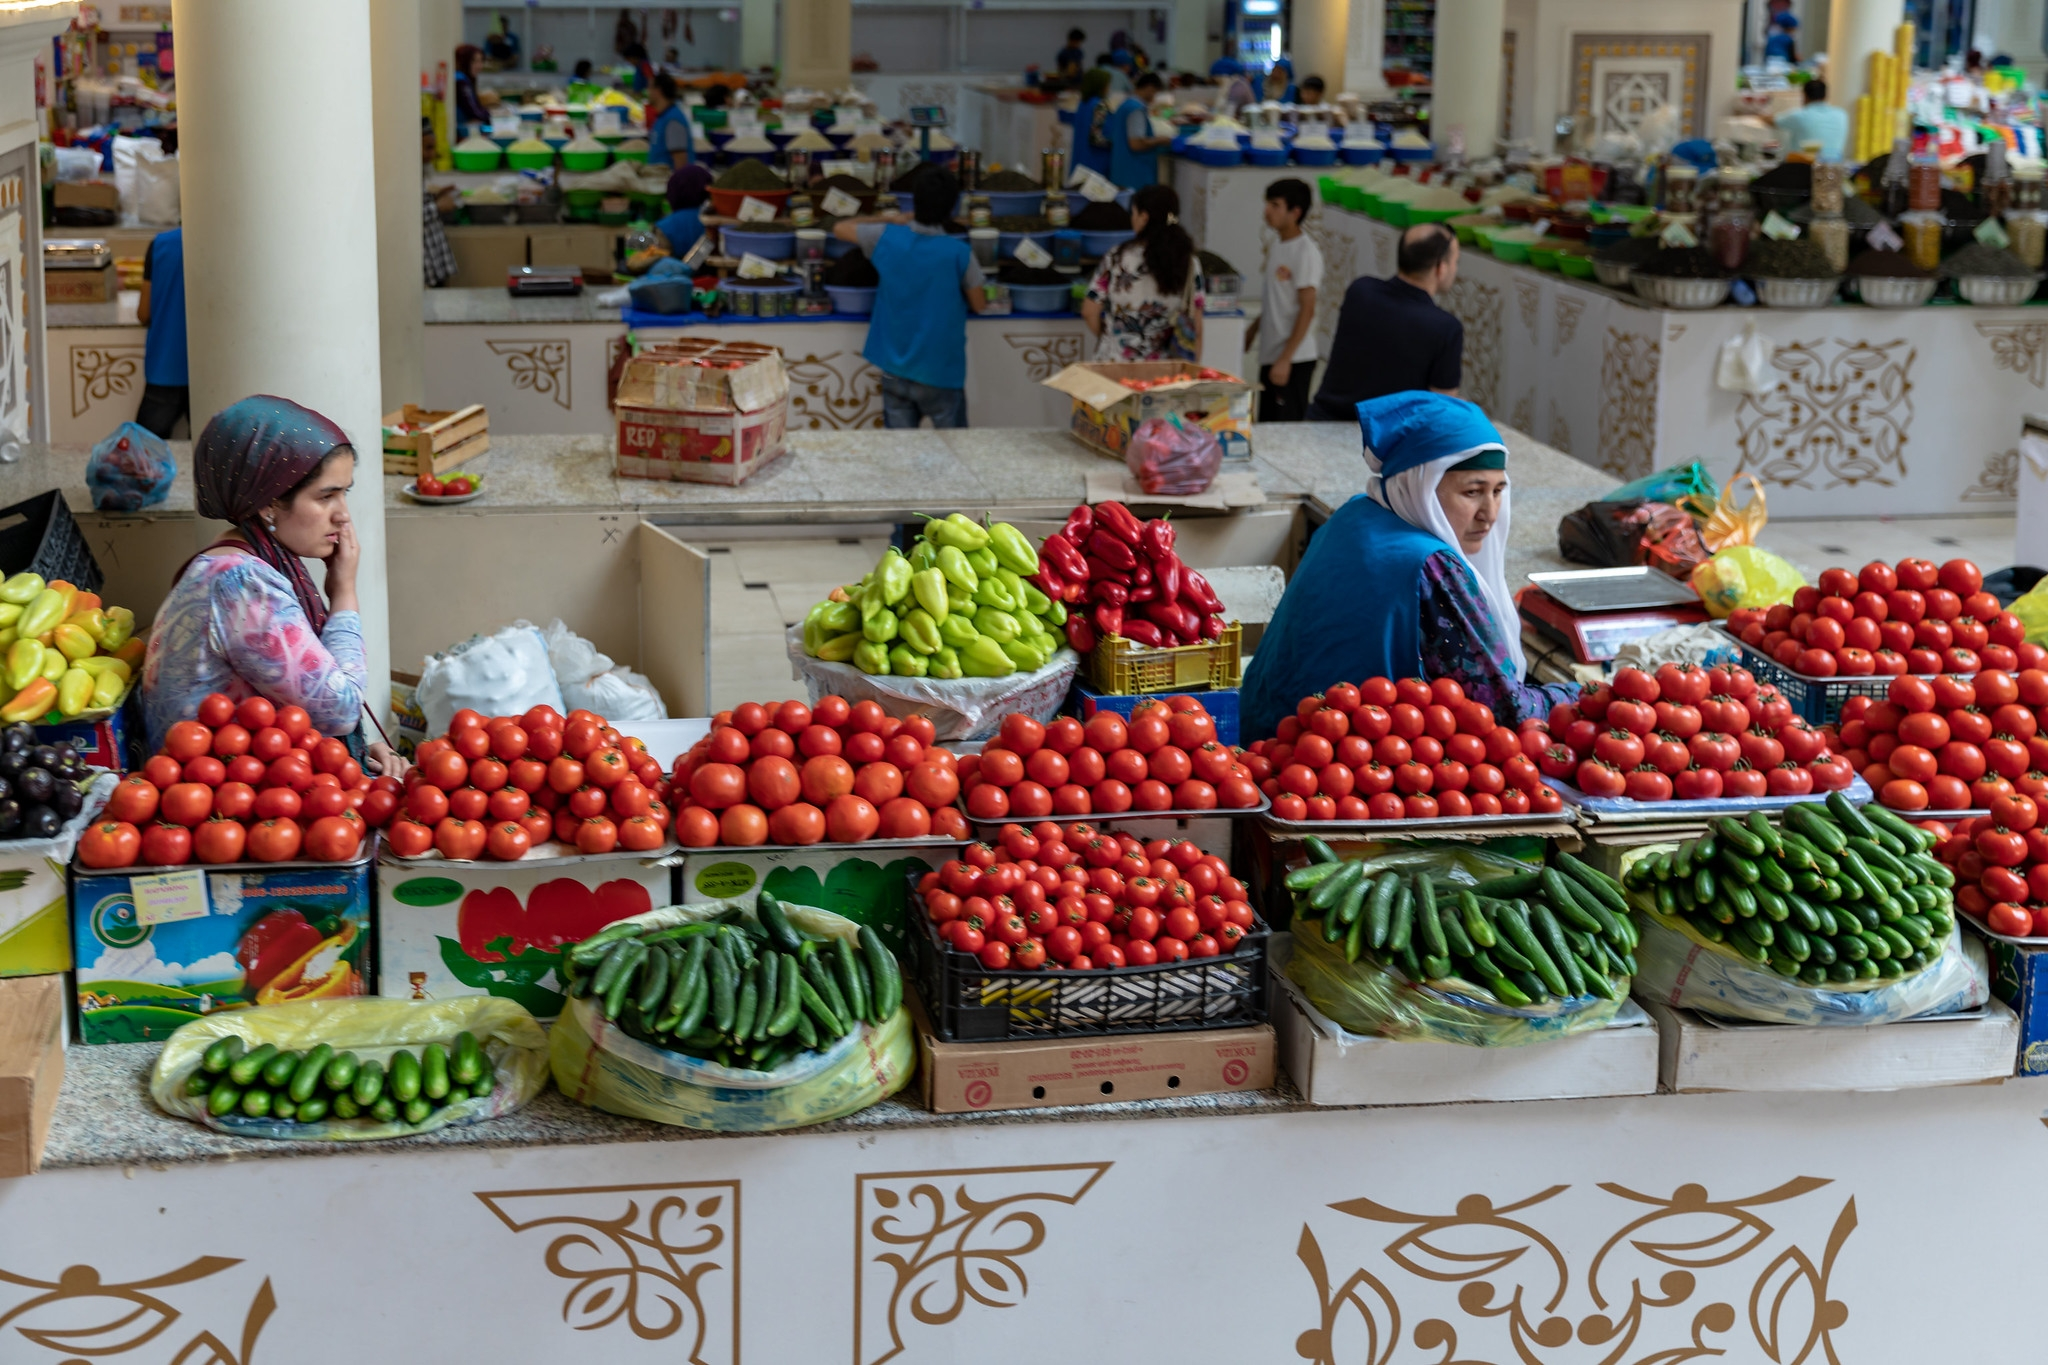 Prices in the bazaar are rising, and will continue to rise. (Photo: Flickr)